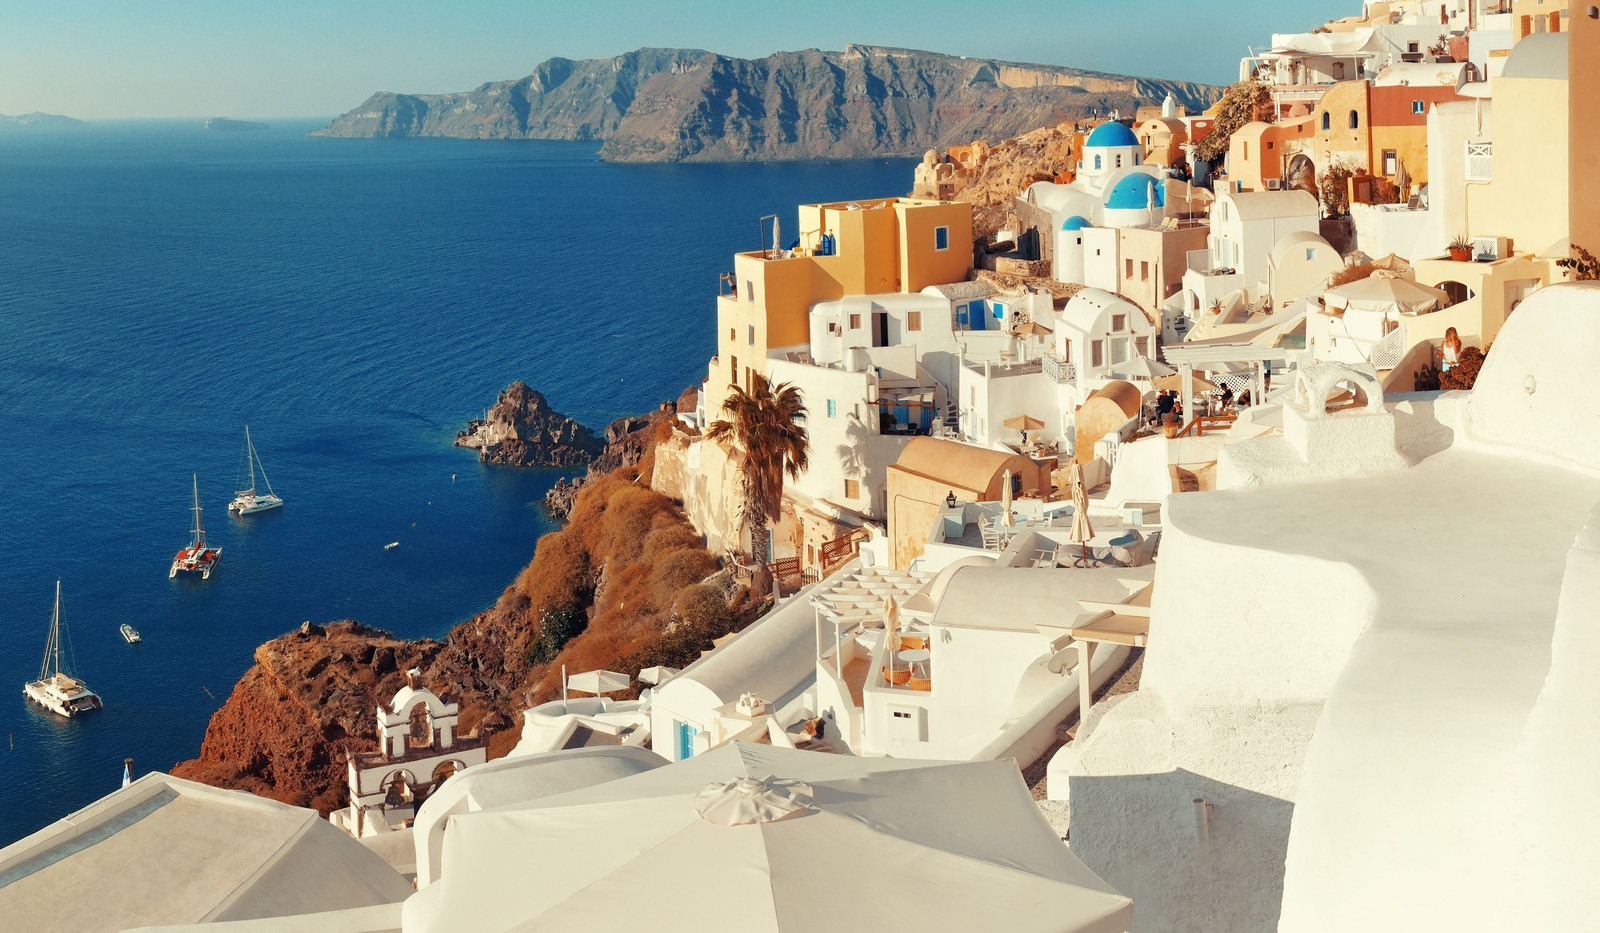 Canva - Santorini Skyline View.jpg